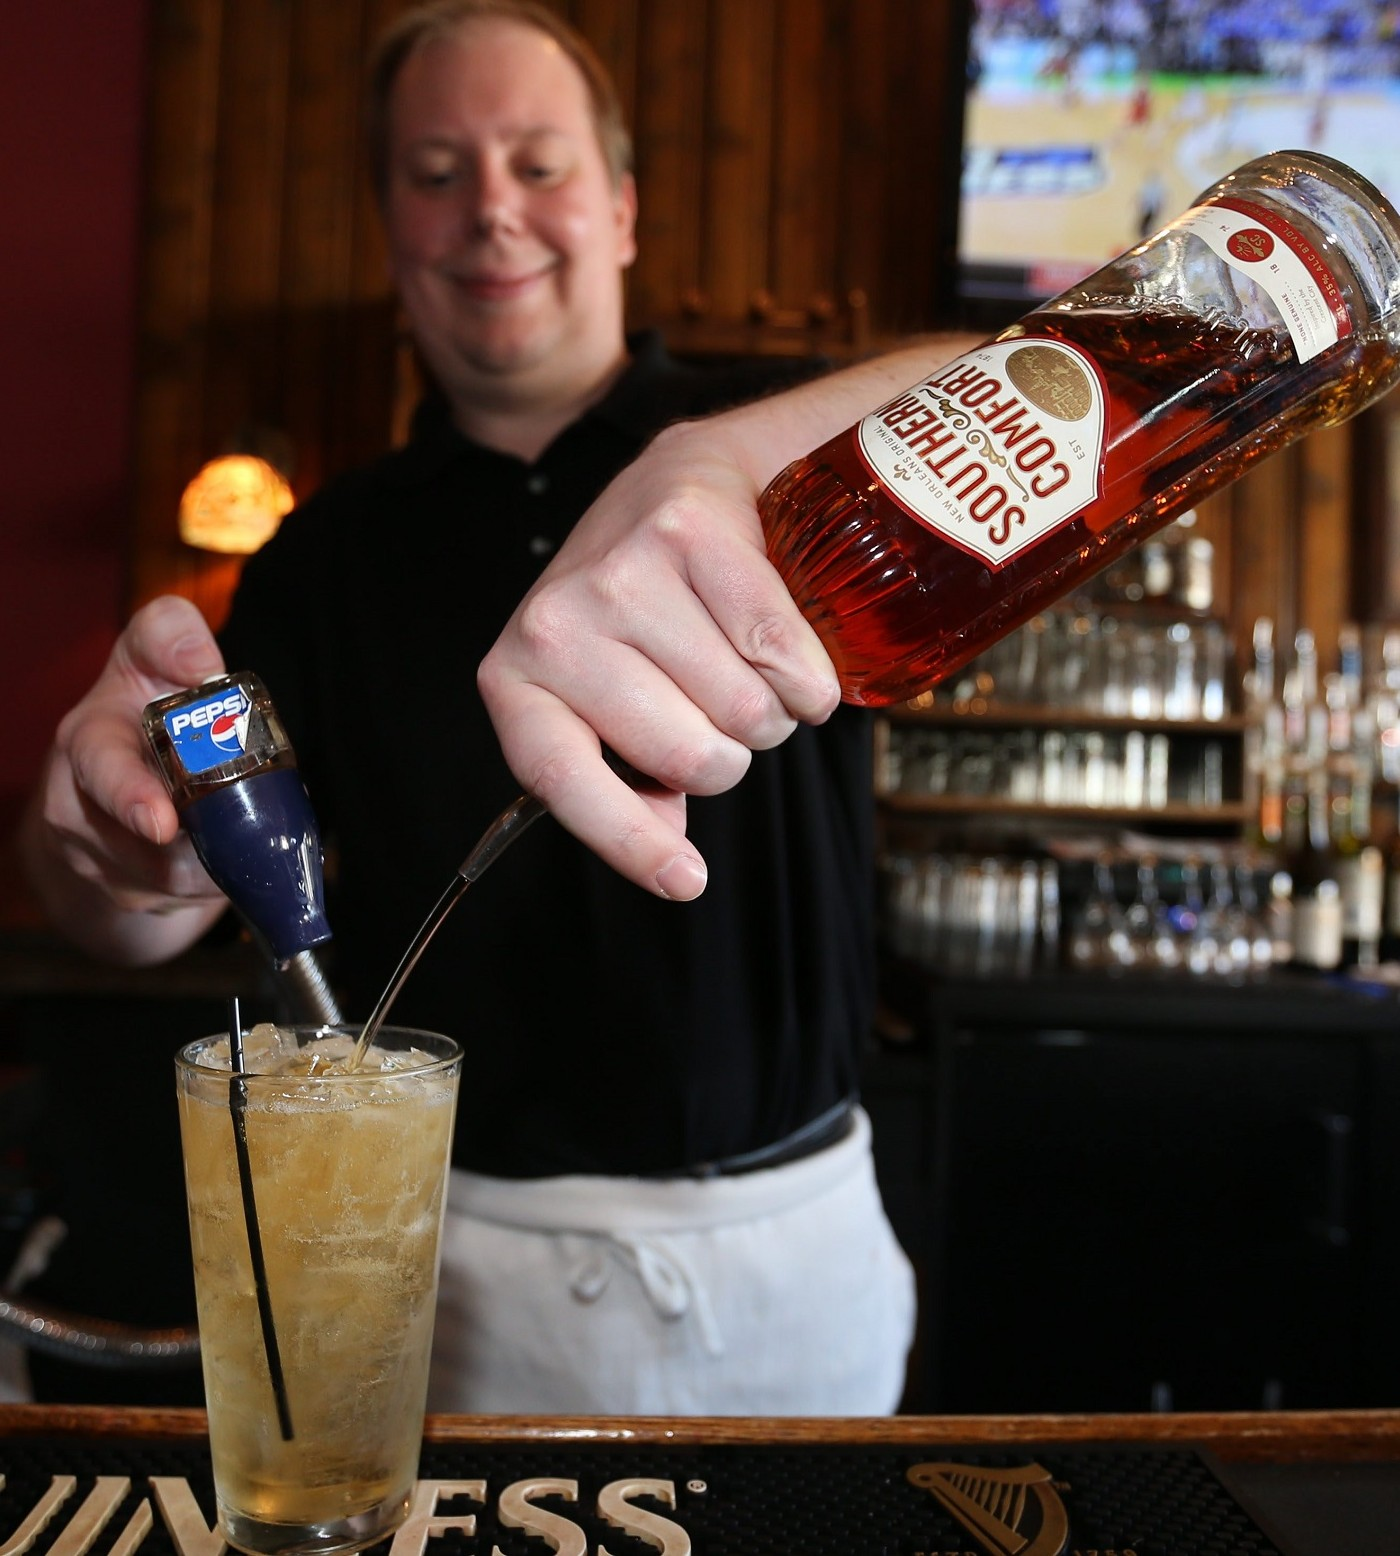 Loughran's is at 4543 Main St. in Snyder.  Bartender Kevin Kirwin makes a Souther Comfort an ginger, Saturday, March 19, 2016.  (Sharon Cantillon/Buffalo News)